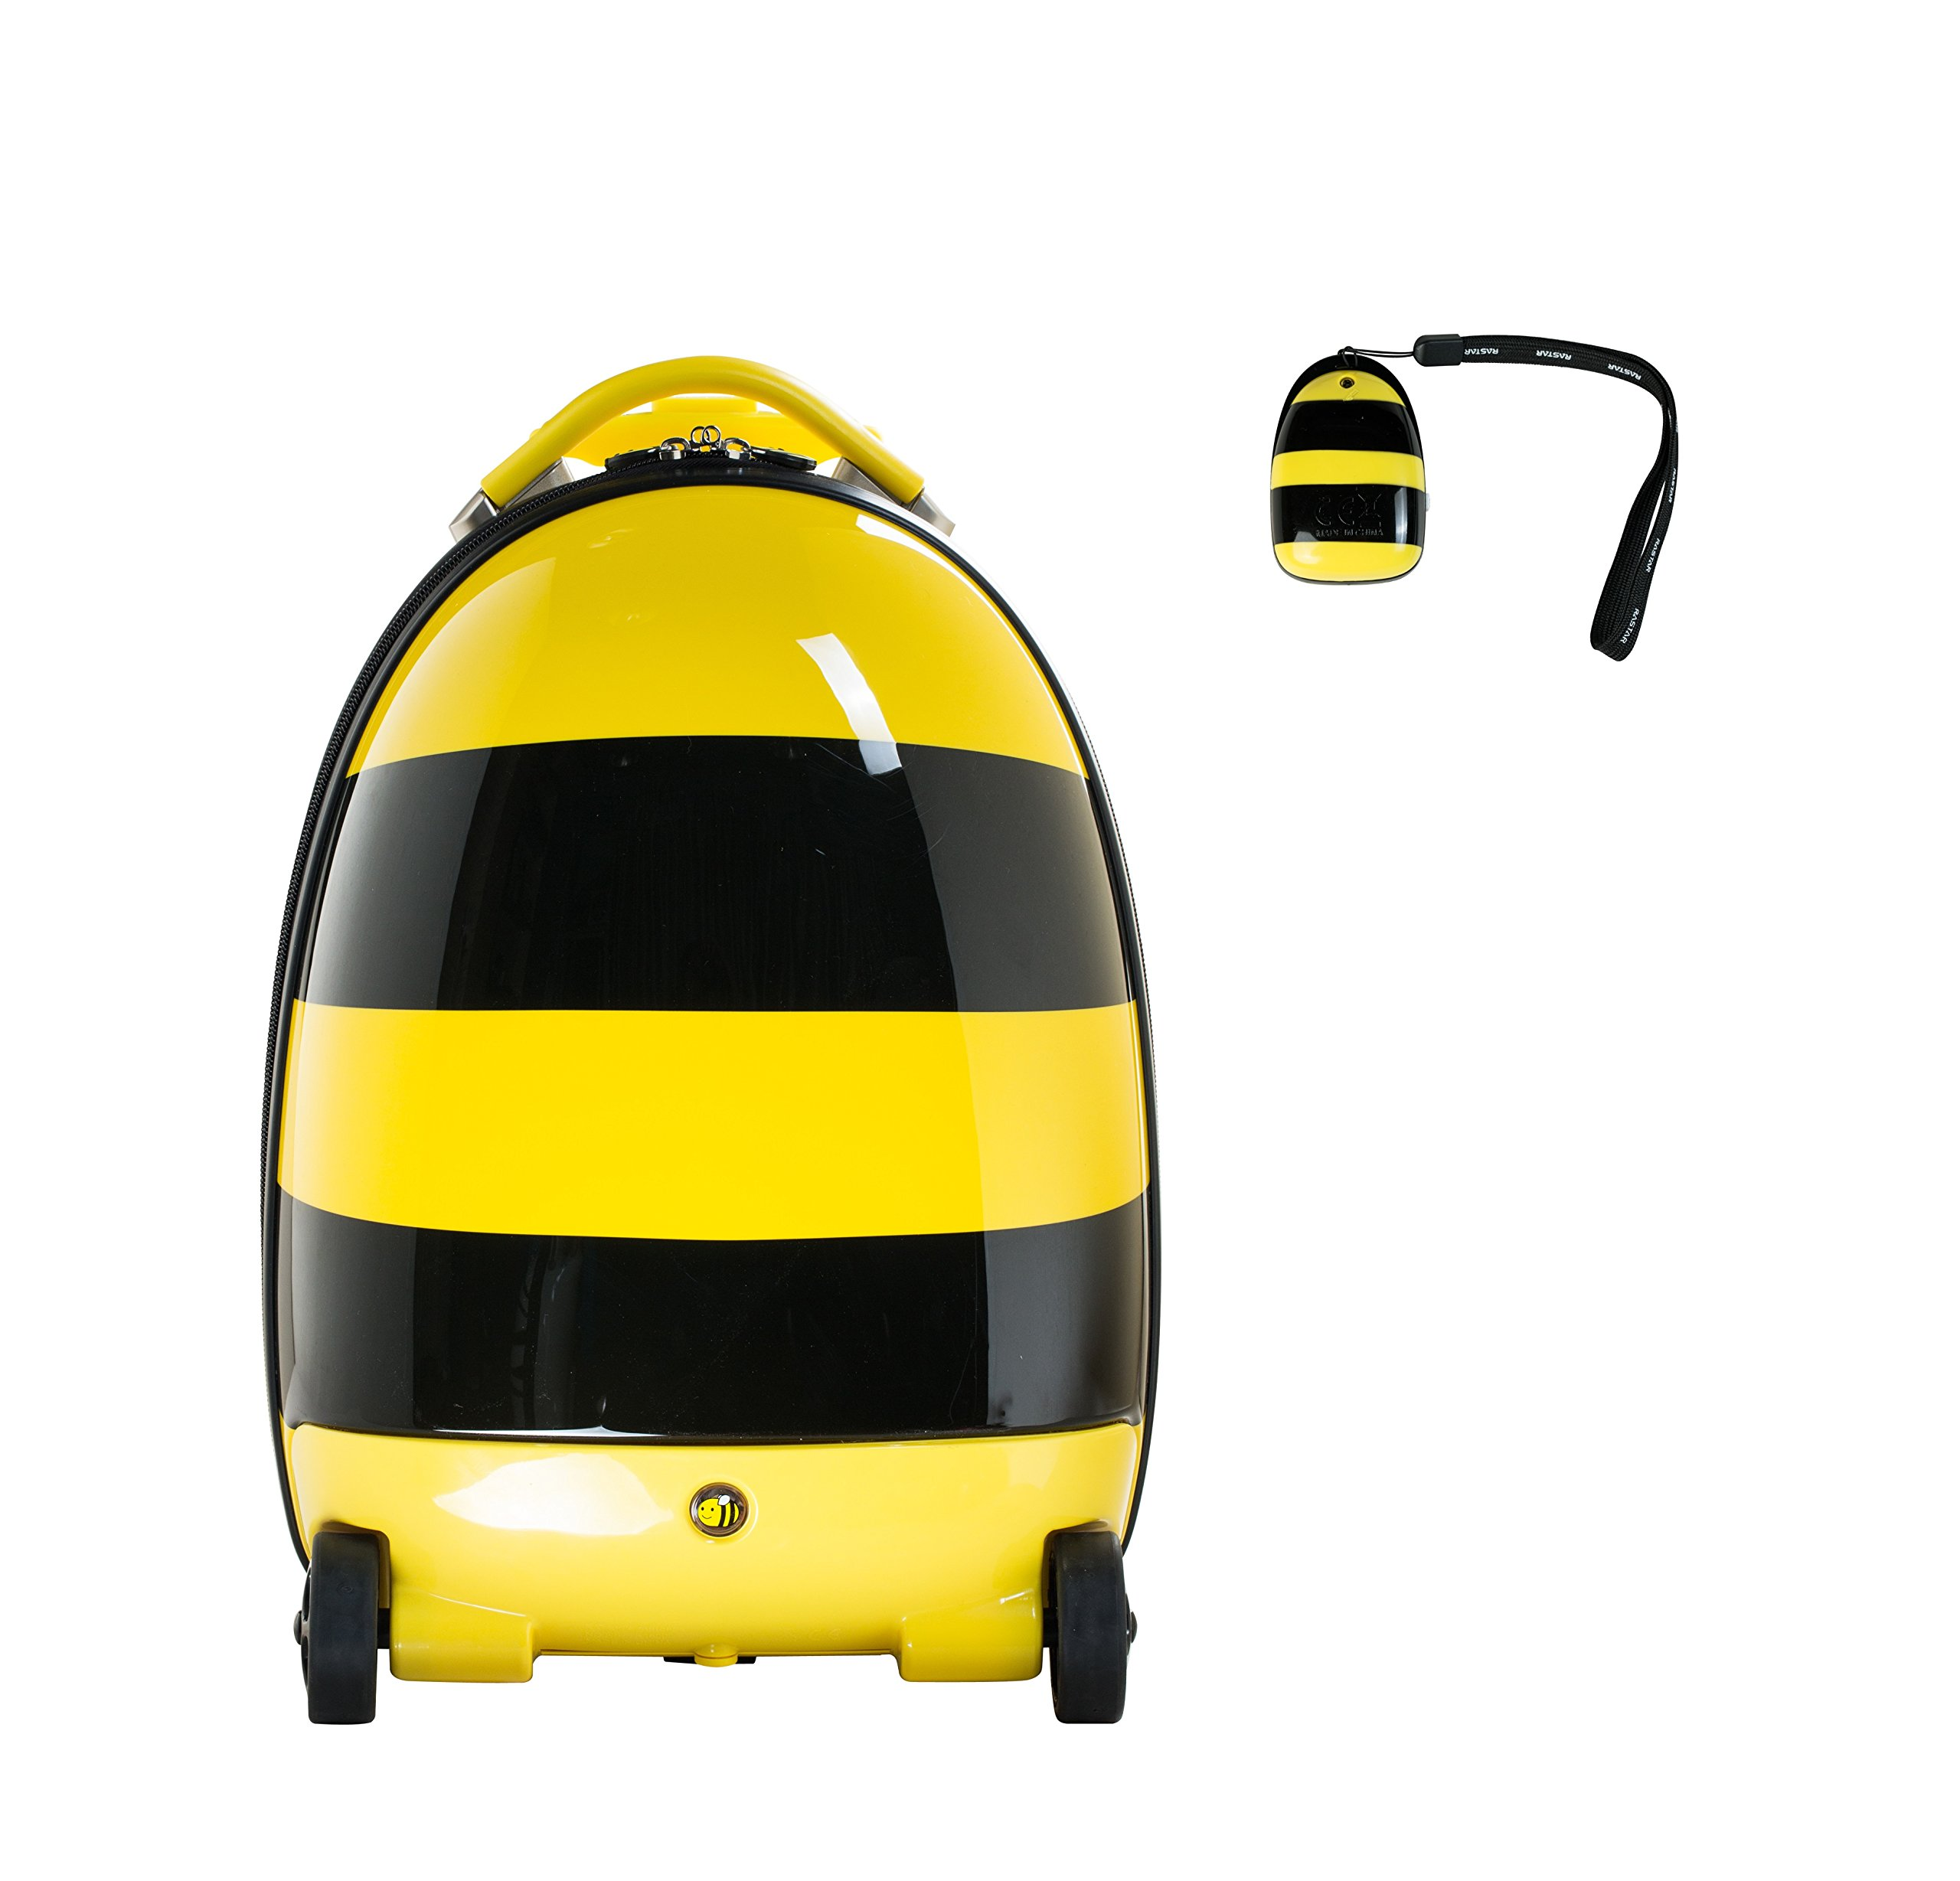 Rastar Kids' R/c Luggage-Bee, Yellow